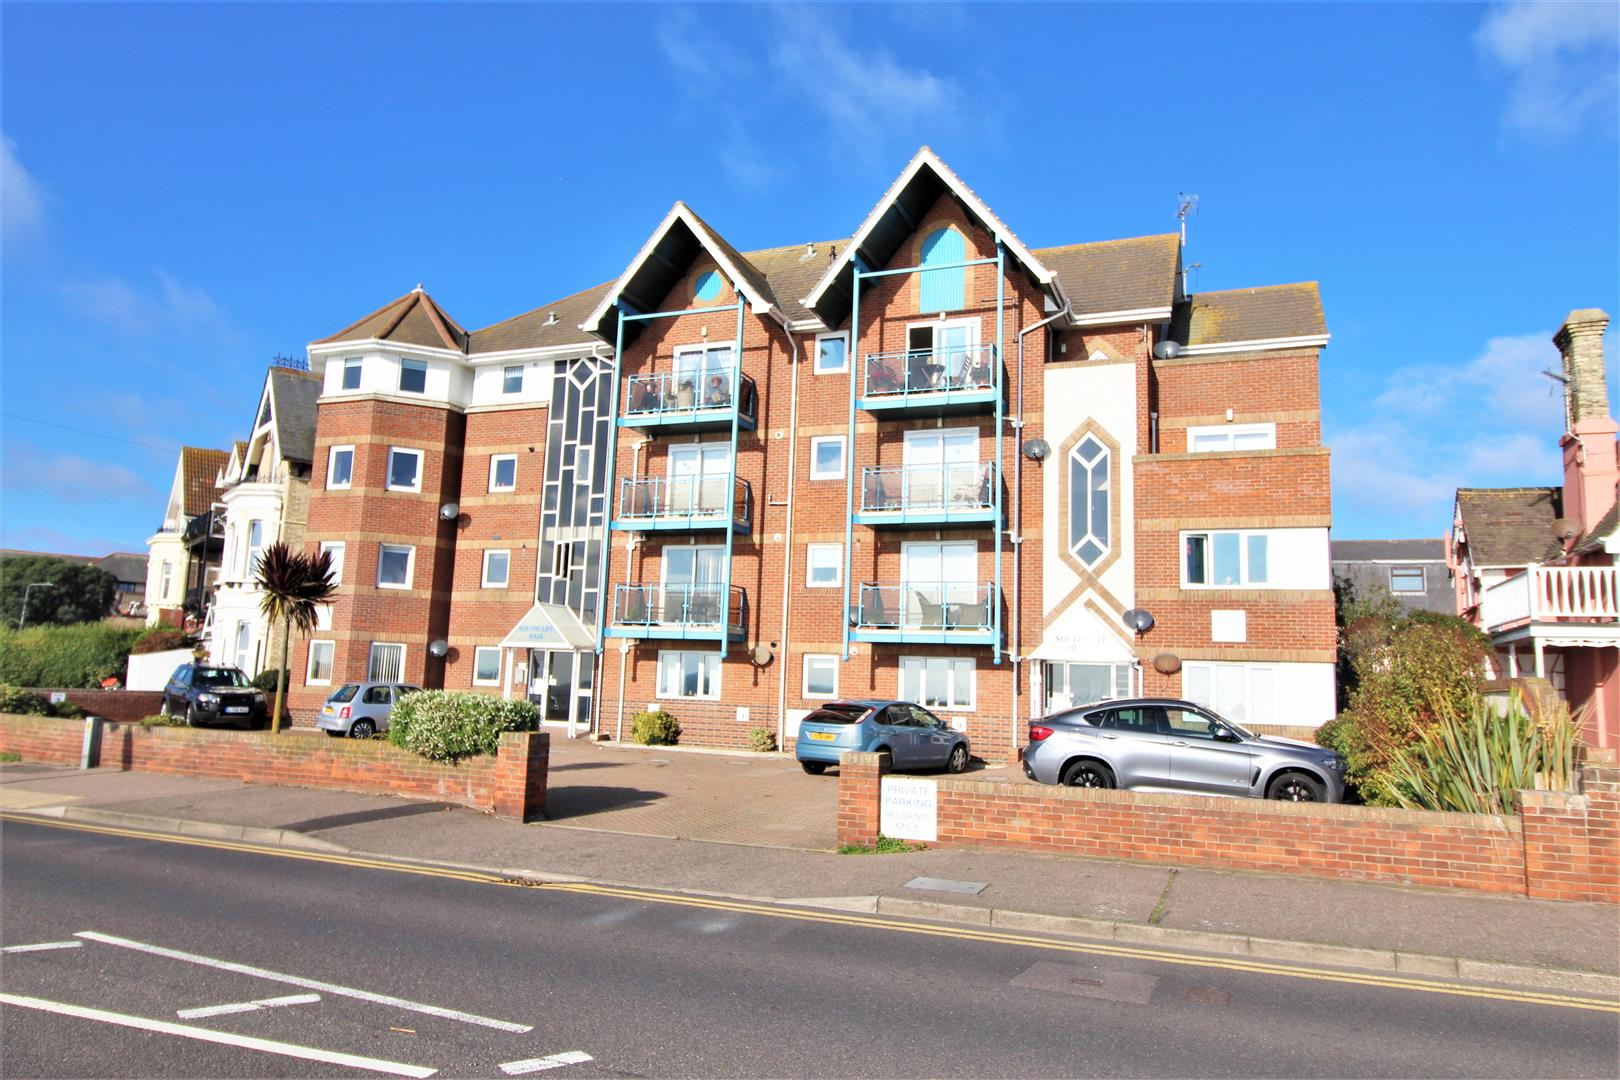 Marine Parade East, Clacton-on-Sea, Essex, CO15 6AD